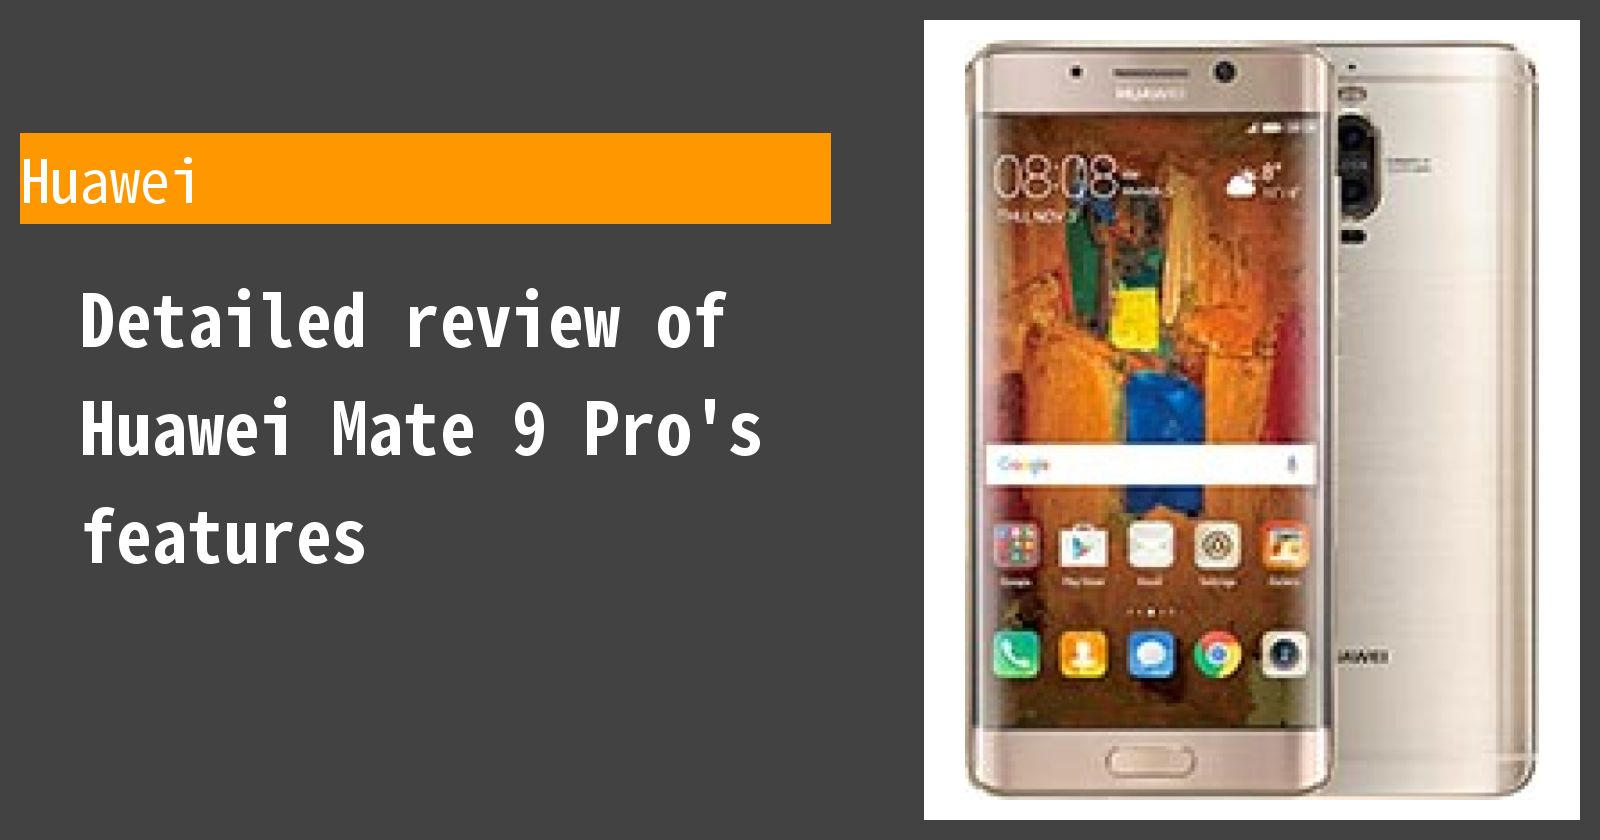 Detailed review of Huawei Mate 9 Pro's features